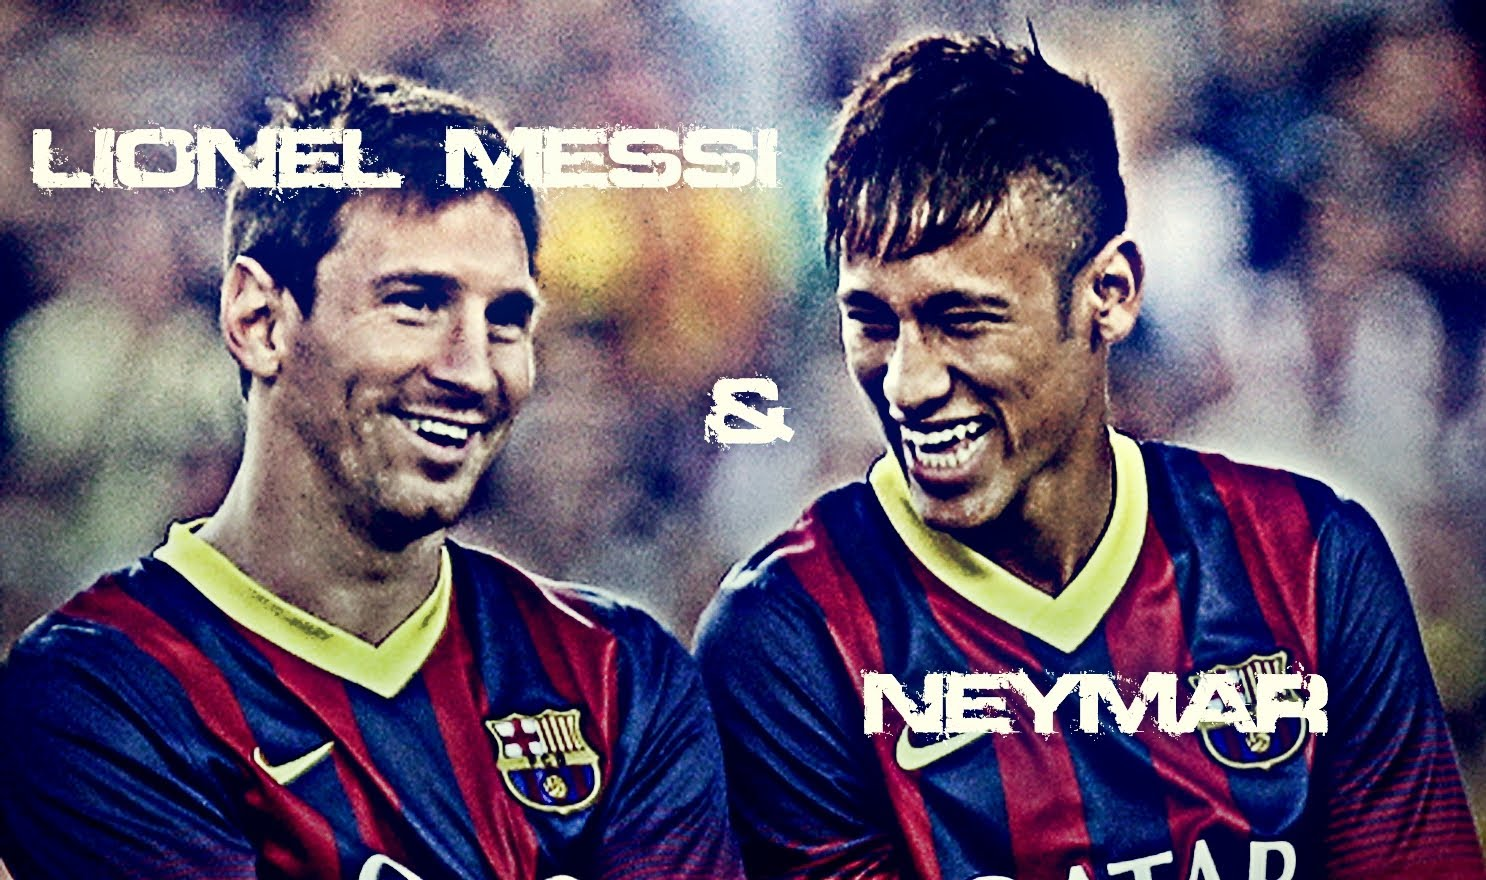 Lionel Messi And Neymar HD Walls Find Wallpapers 1486x880